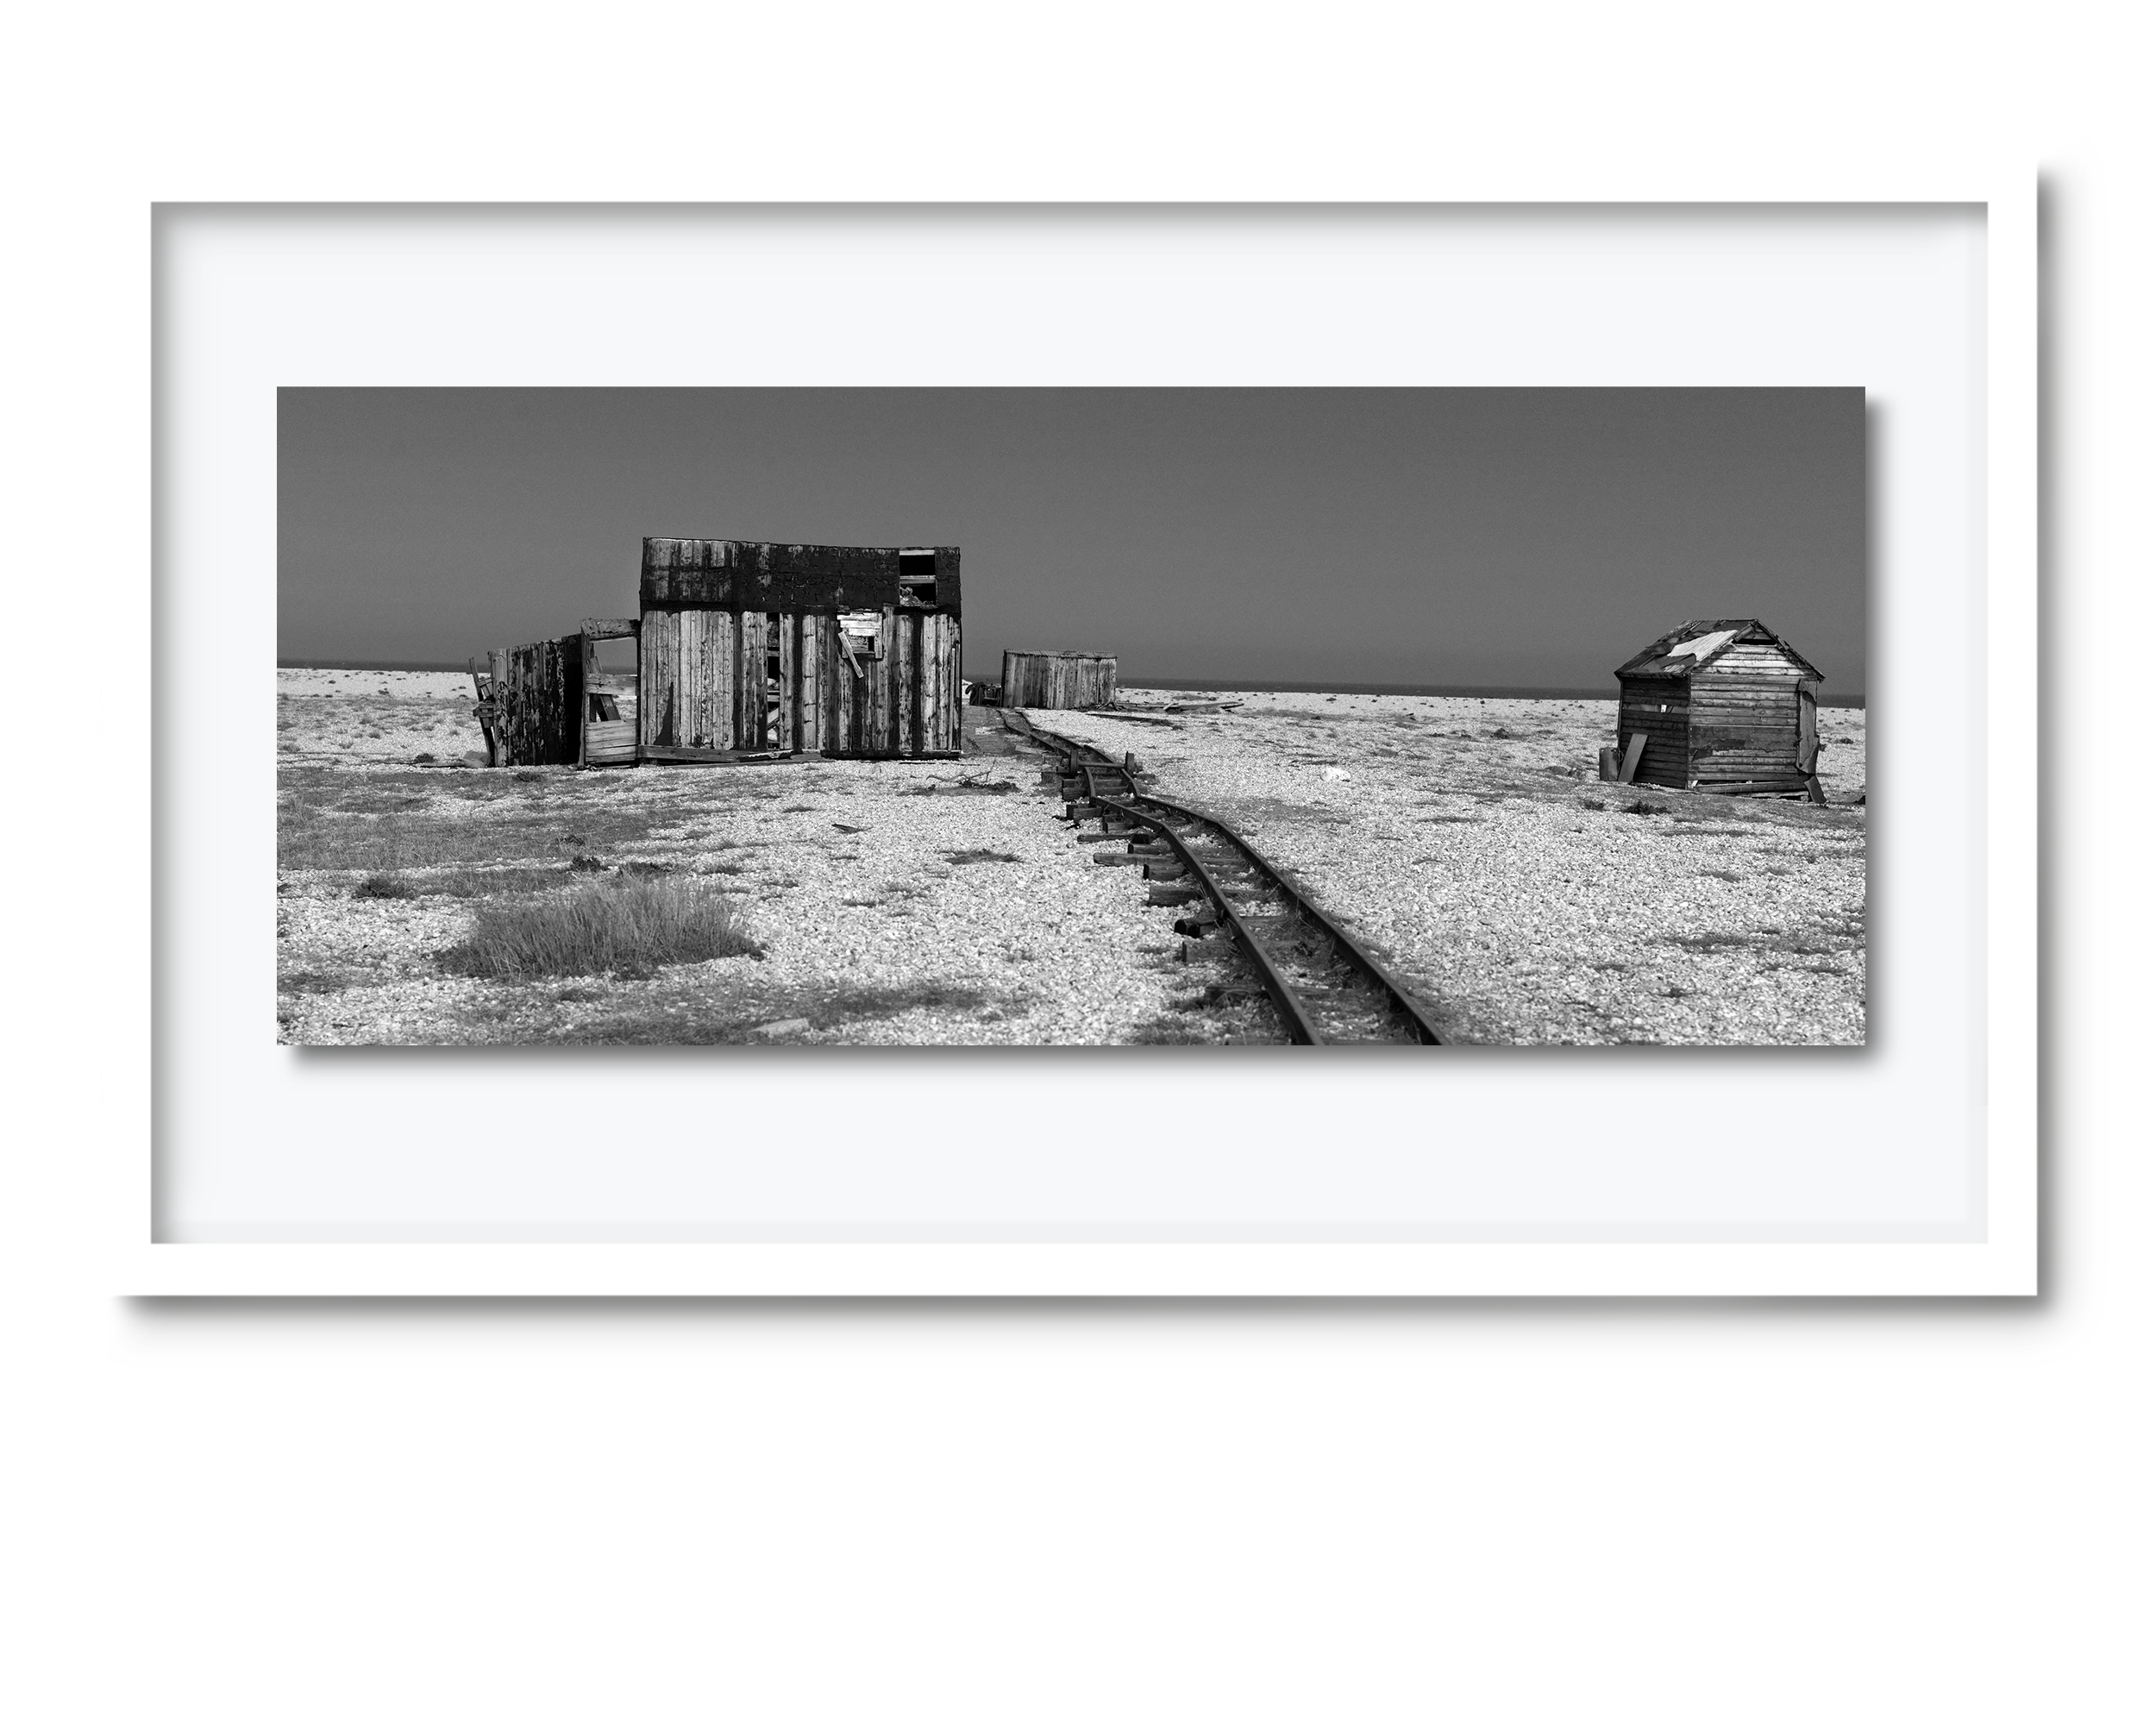 30.david-pearce-dungeness2.png